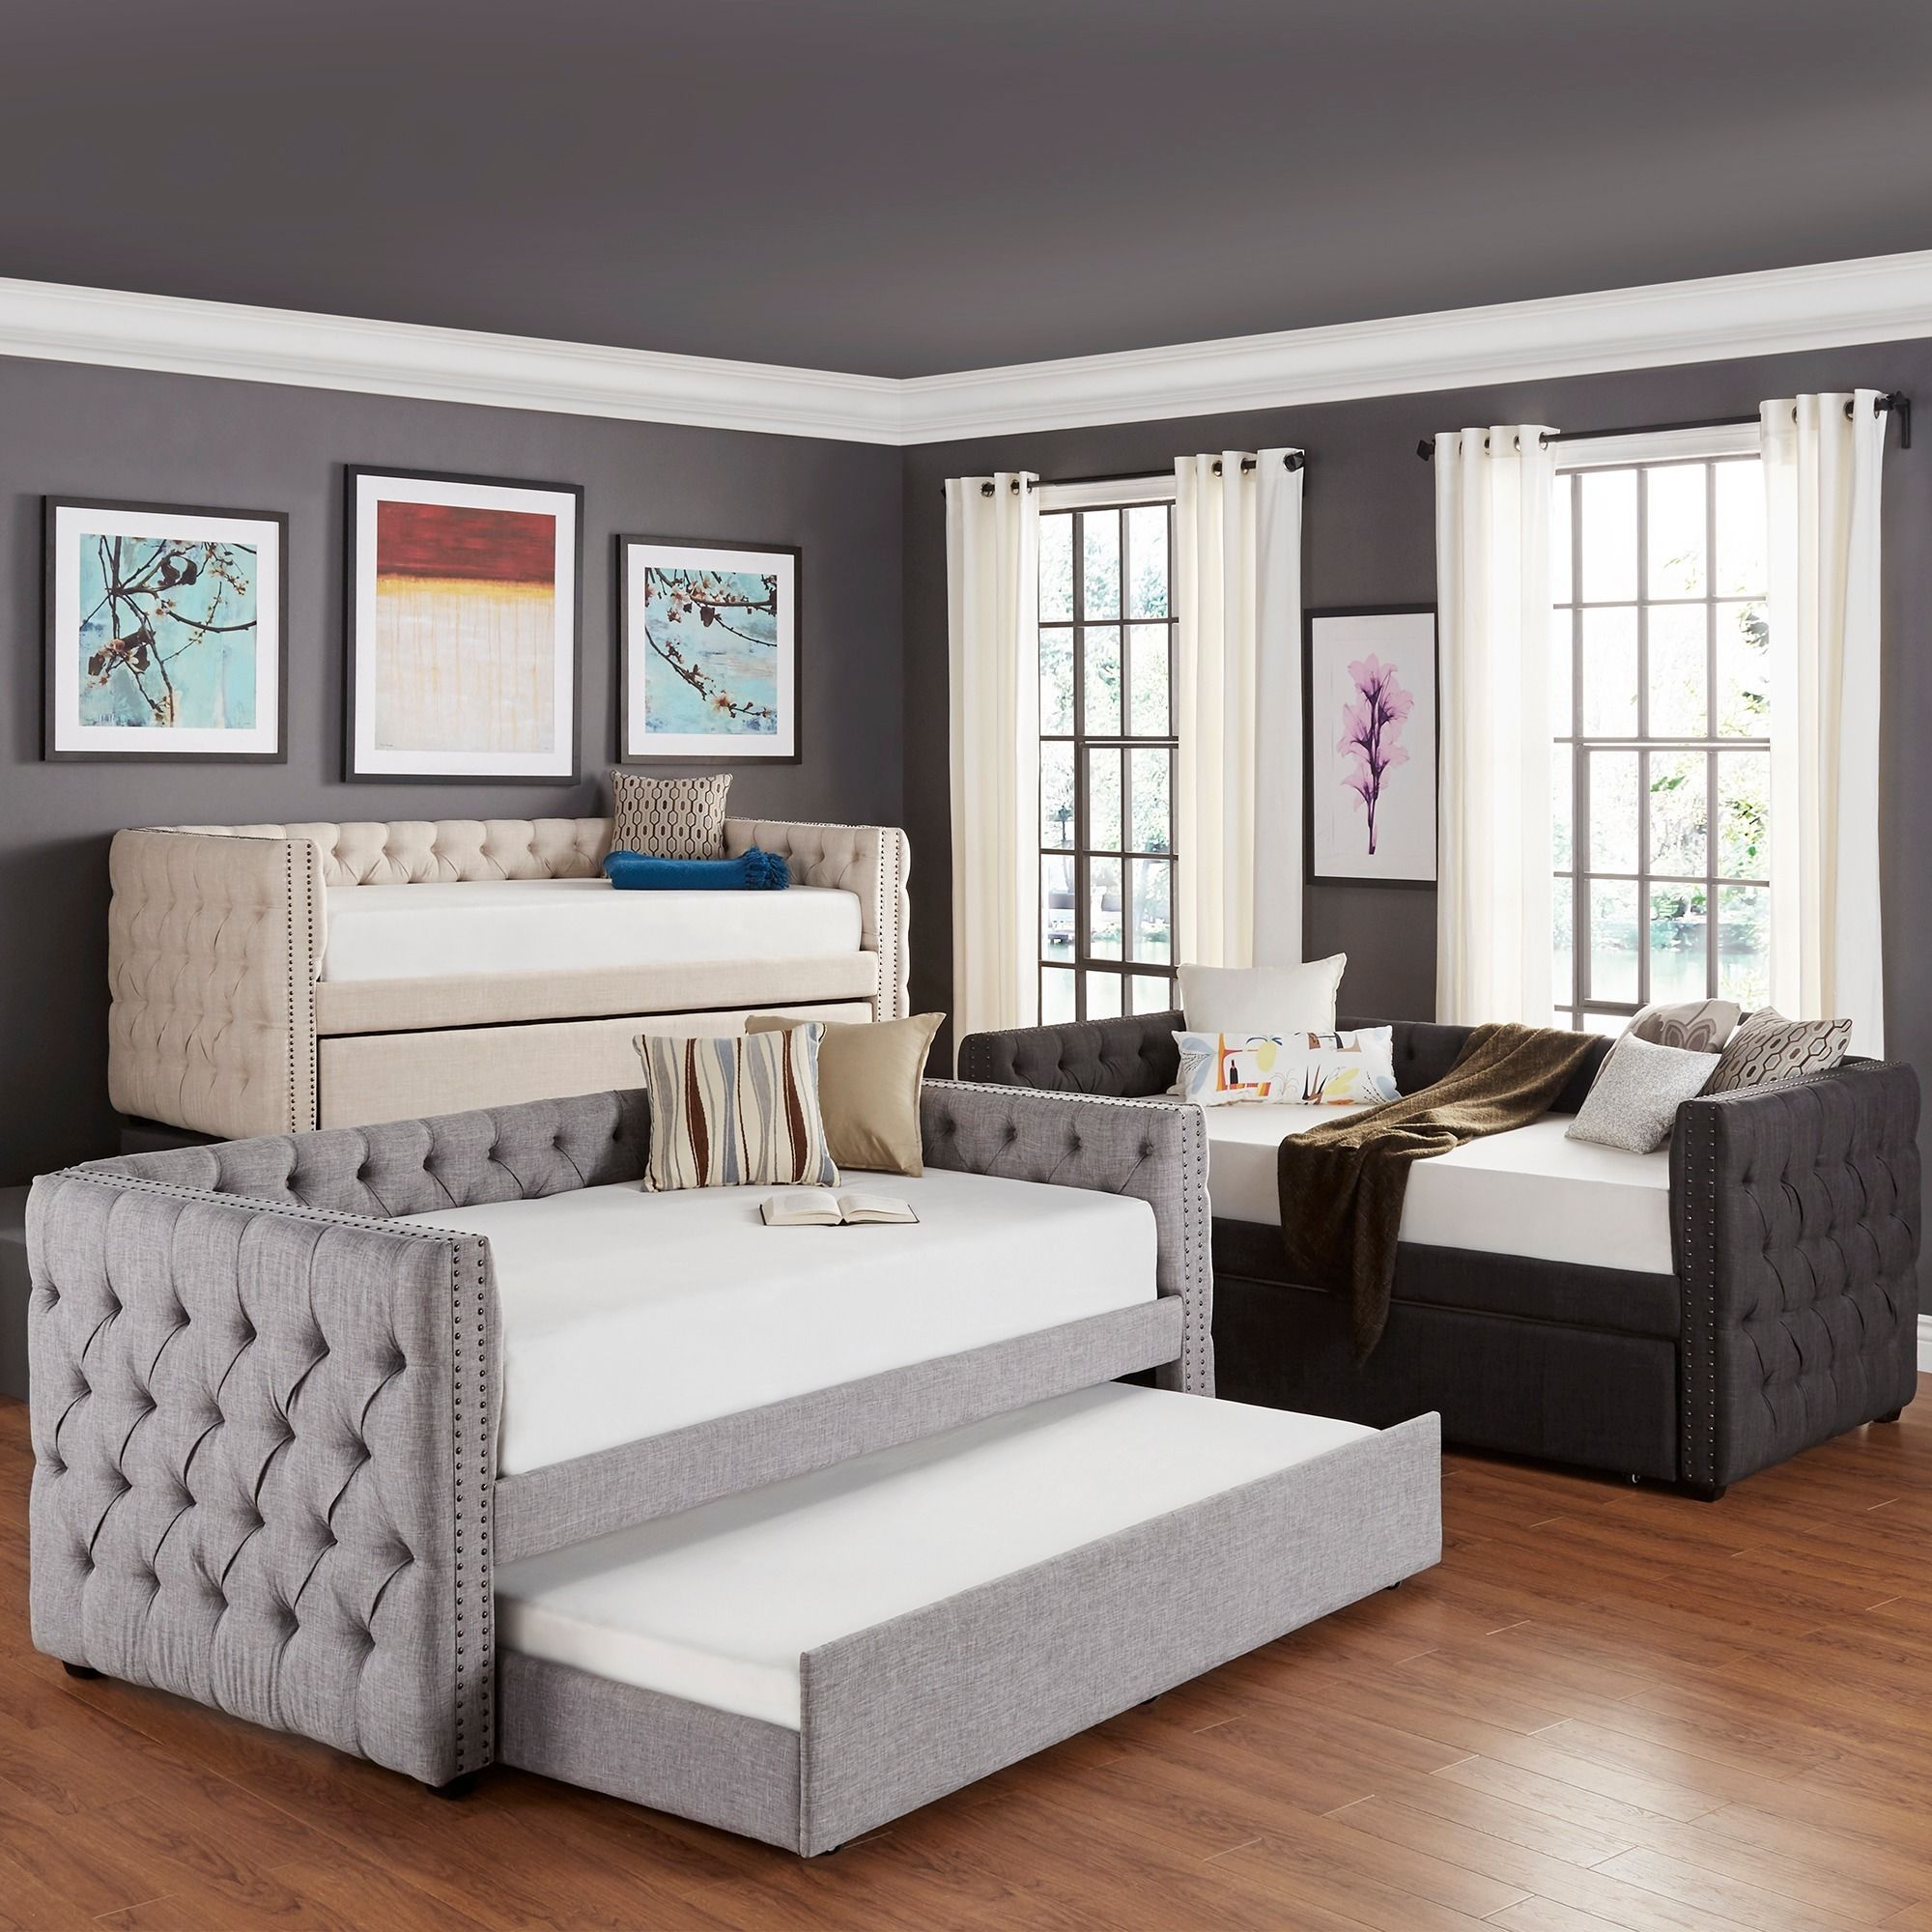 Overstock Daybeds With Trundle : Knightsbridge tufted nailhead chesterfield daybed and